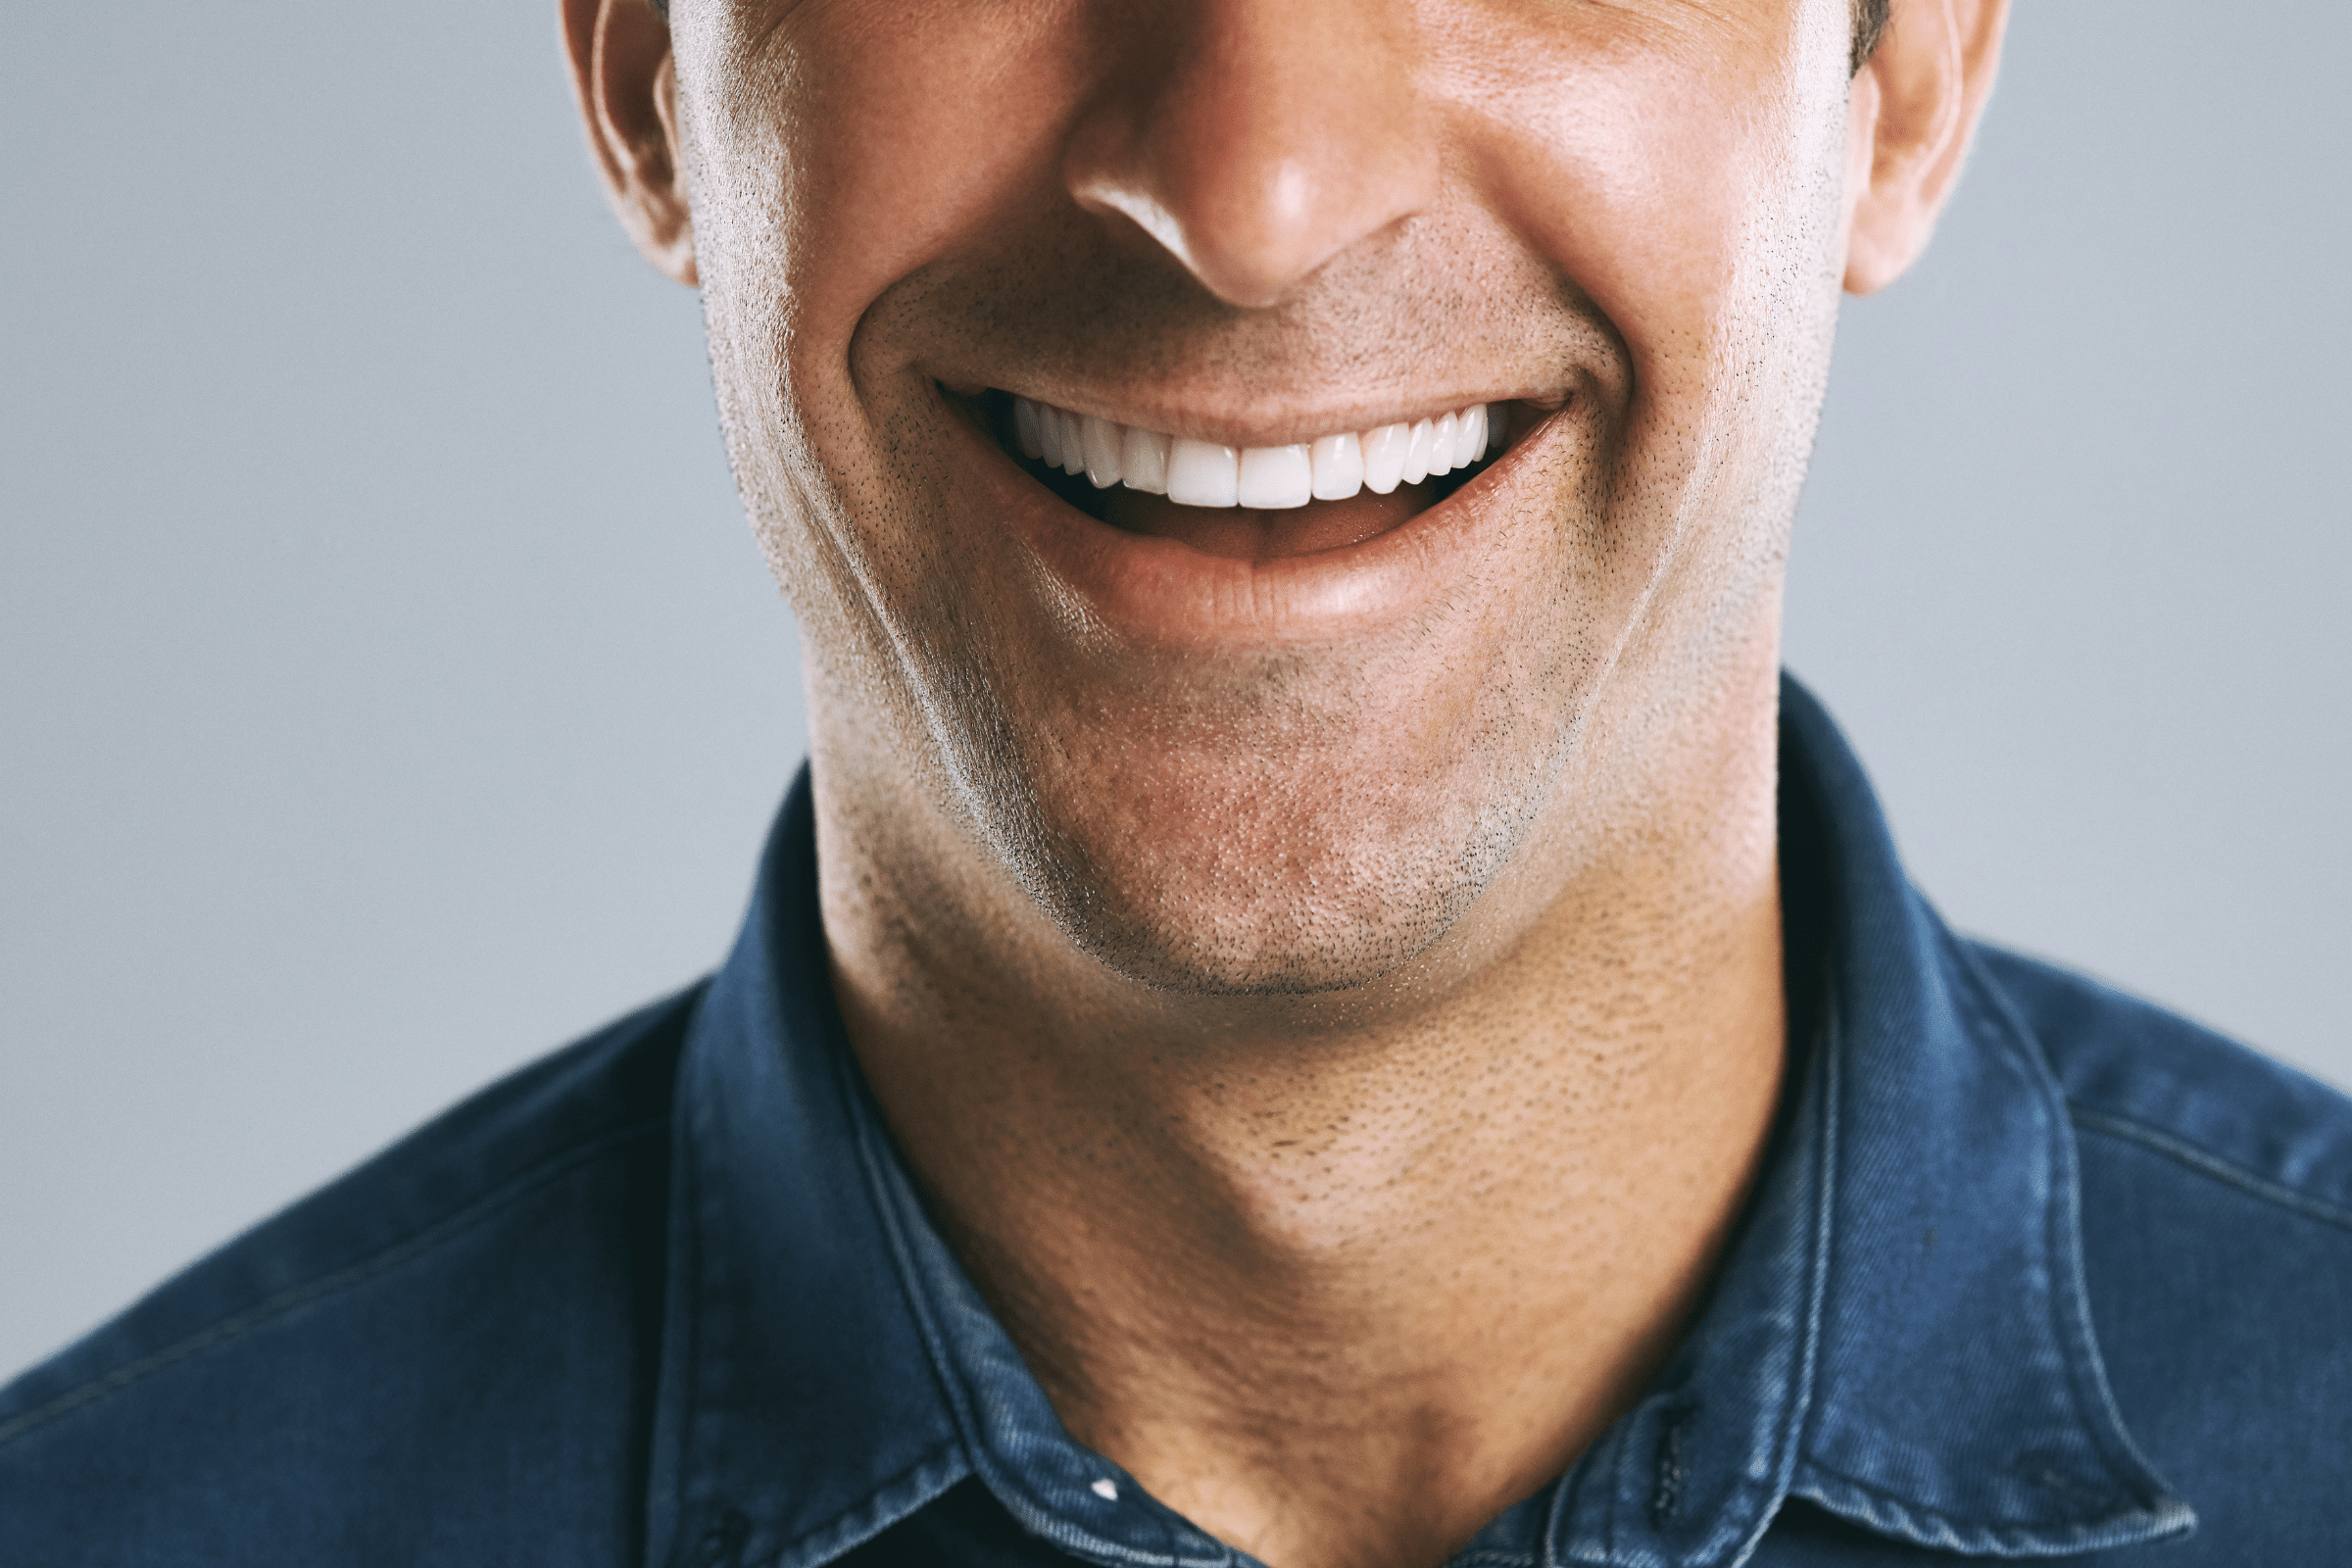 A Comparison of Veneers and Bonding to Improve Your SMile